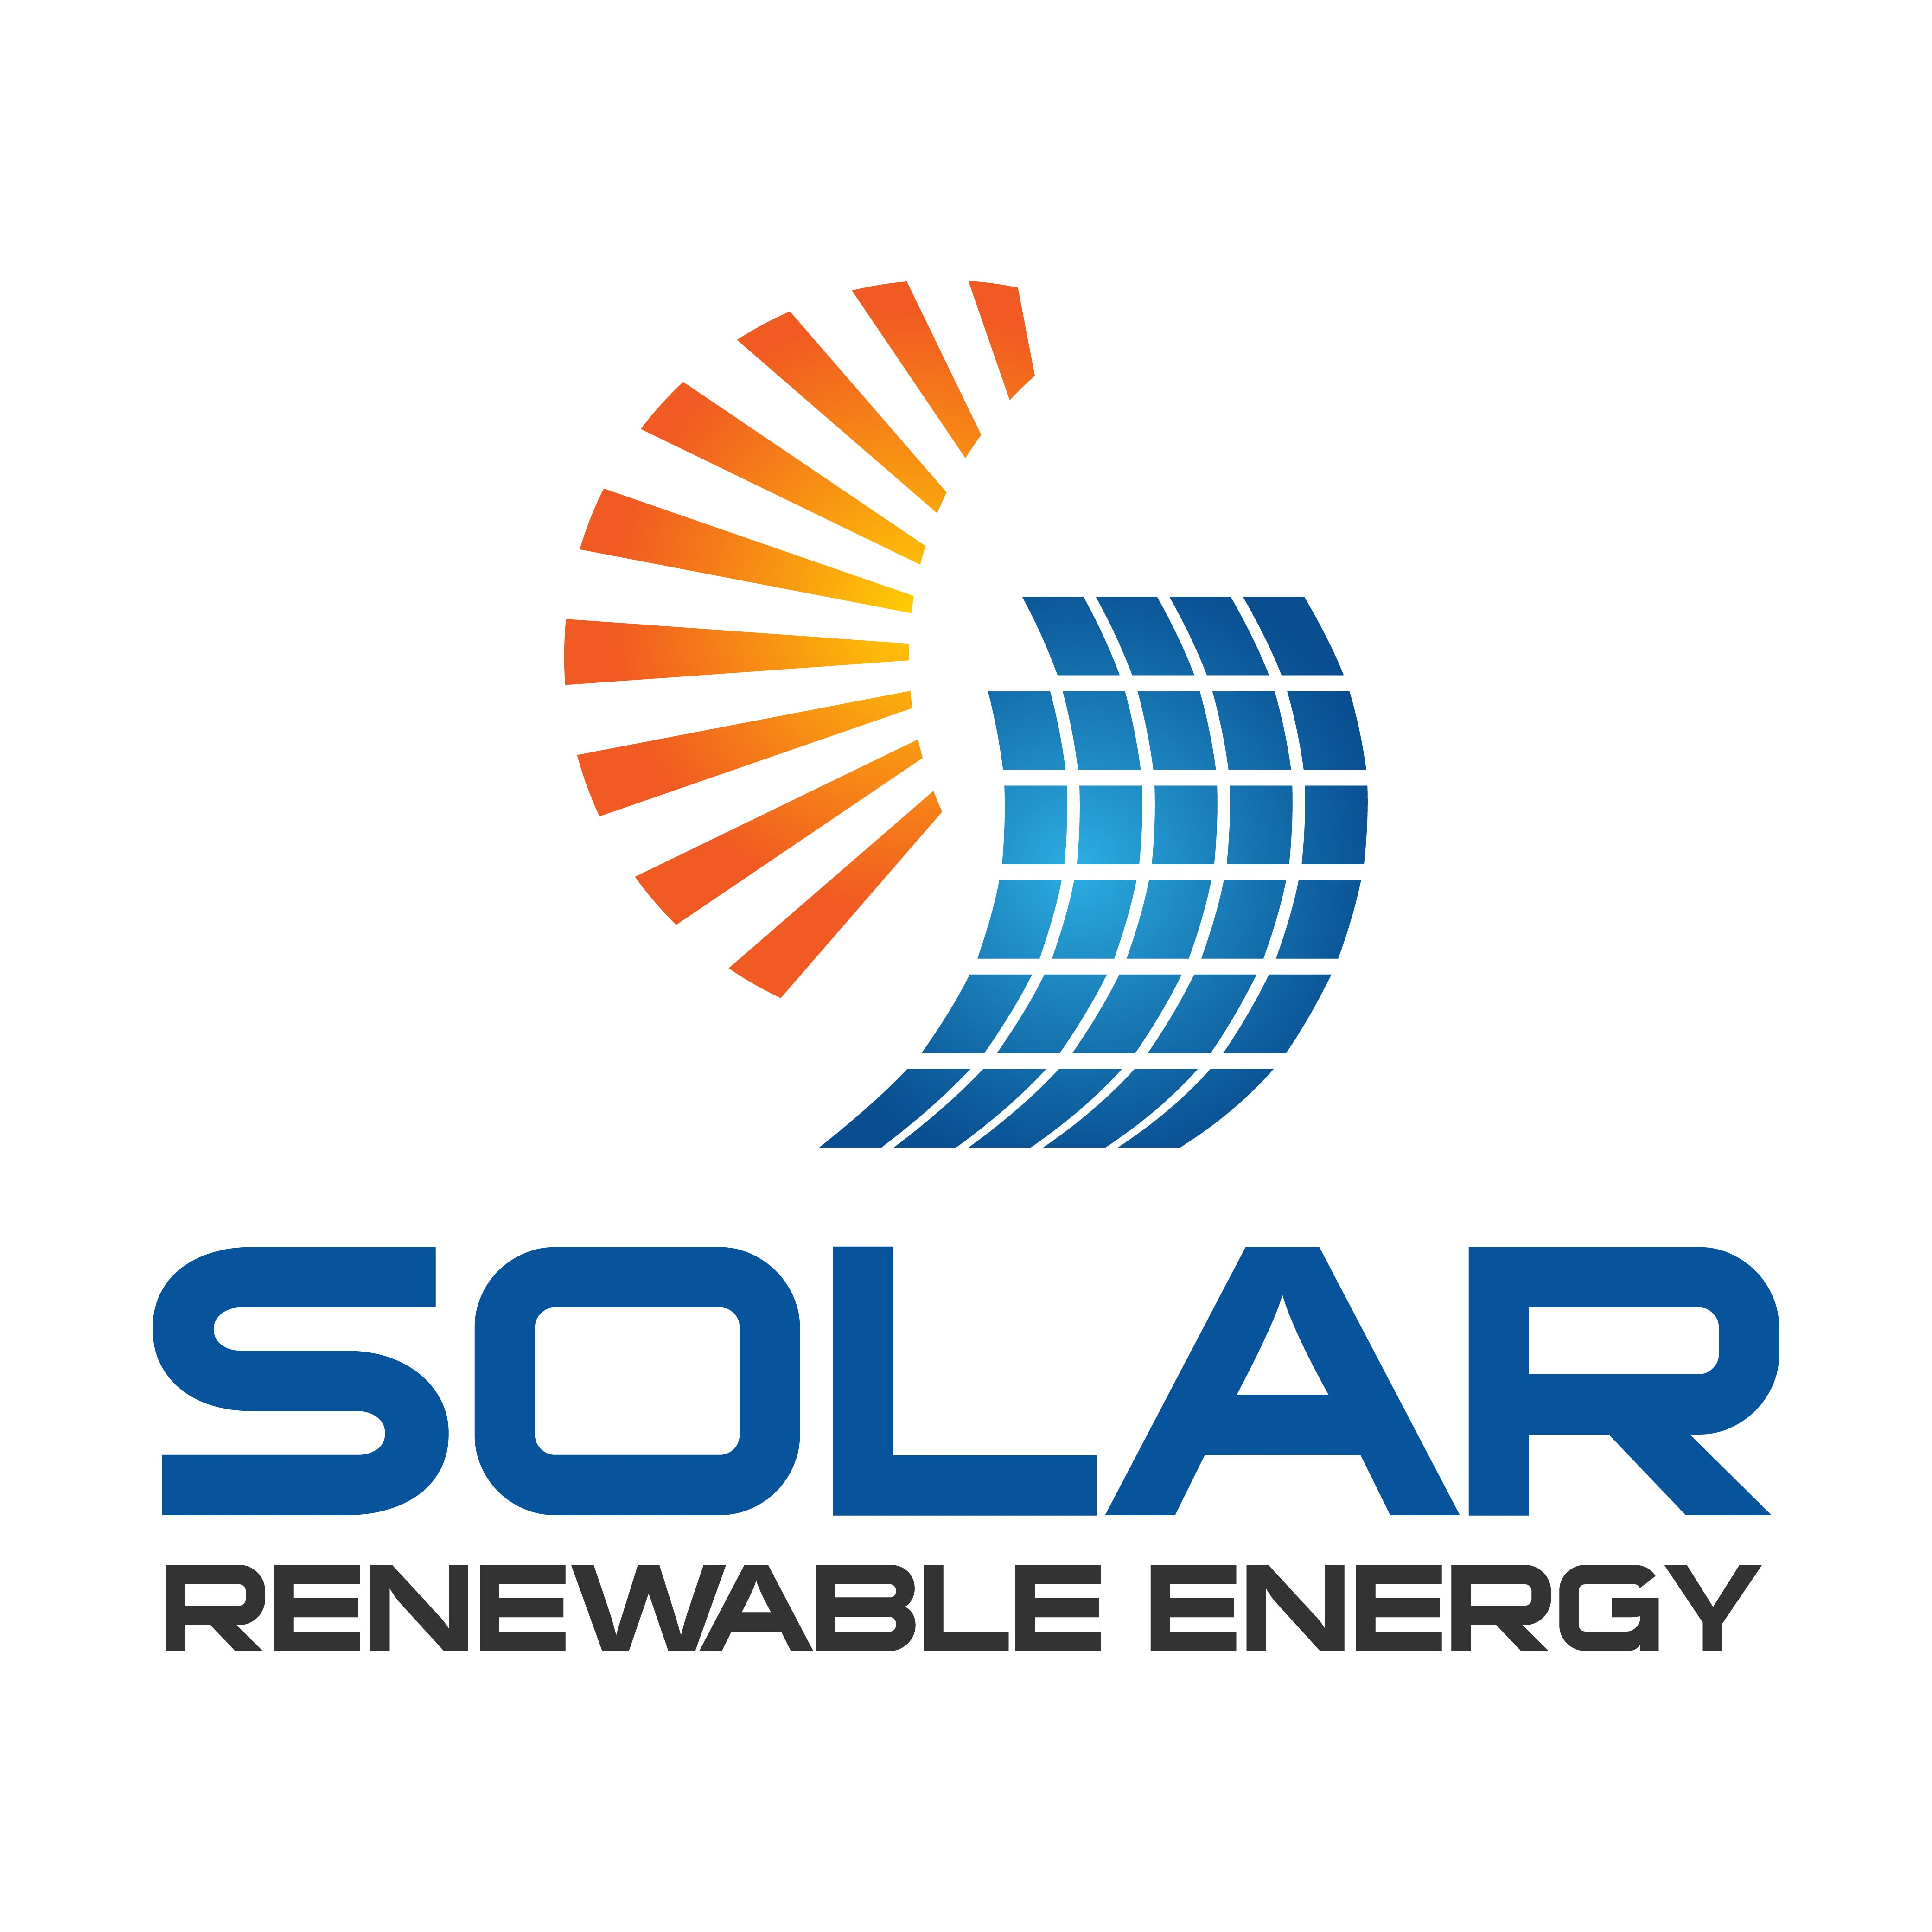 Solar Renewable Energy logo